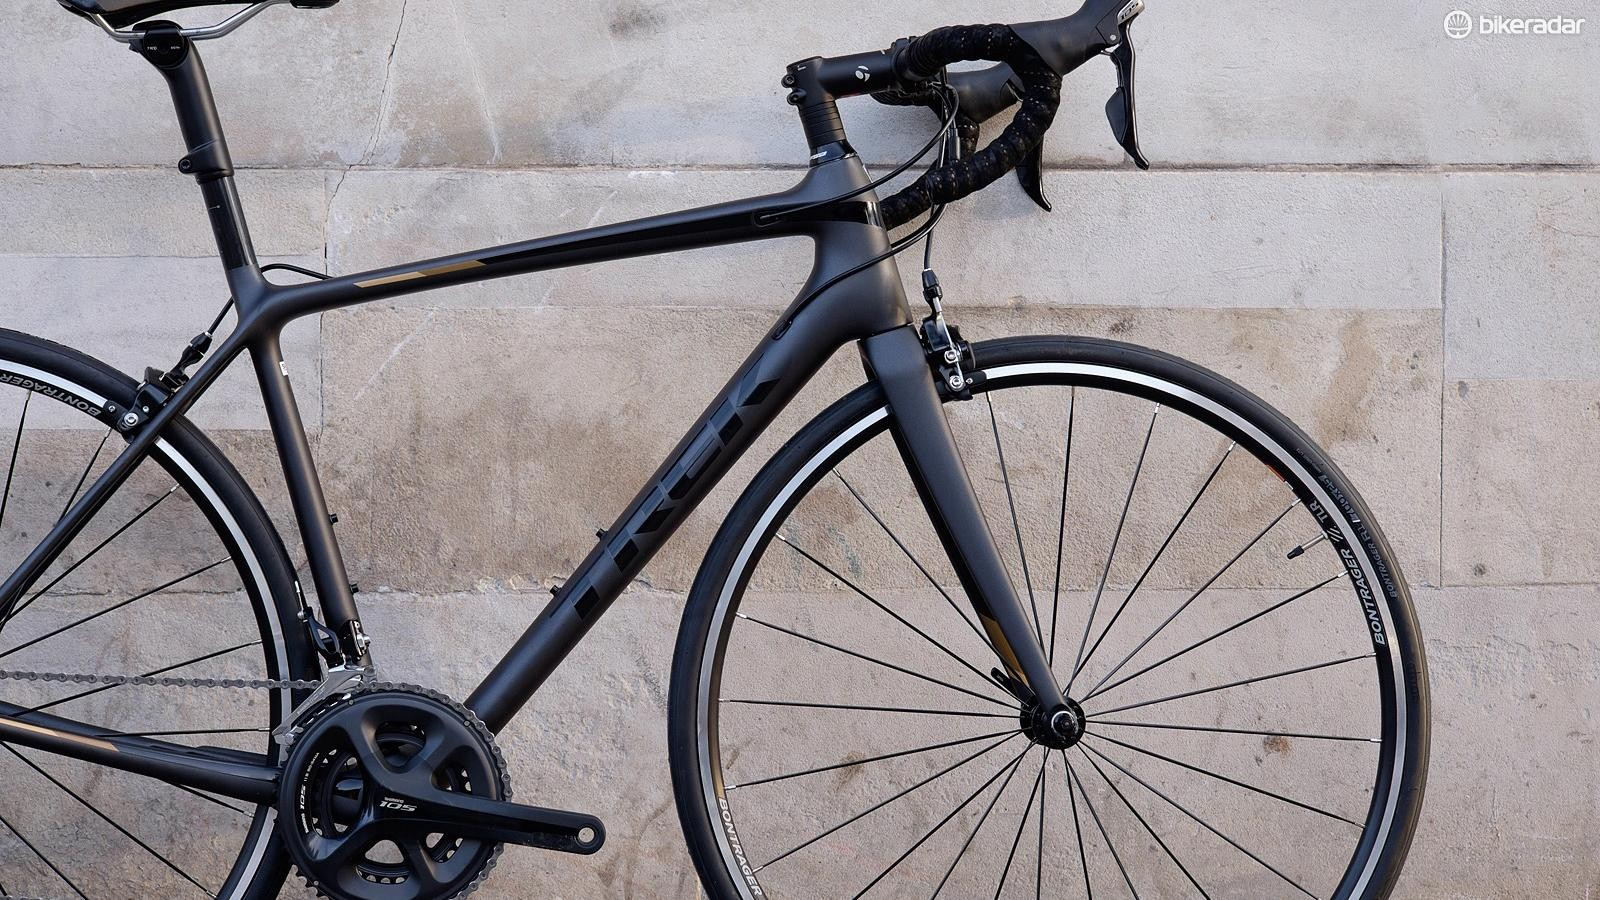 A carbon frame provides a good basis for future upgrades if you want to drop weight or improve performance